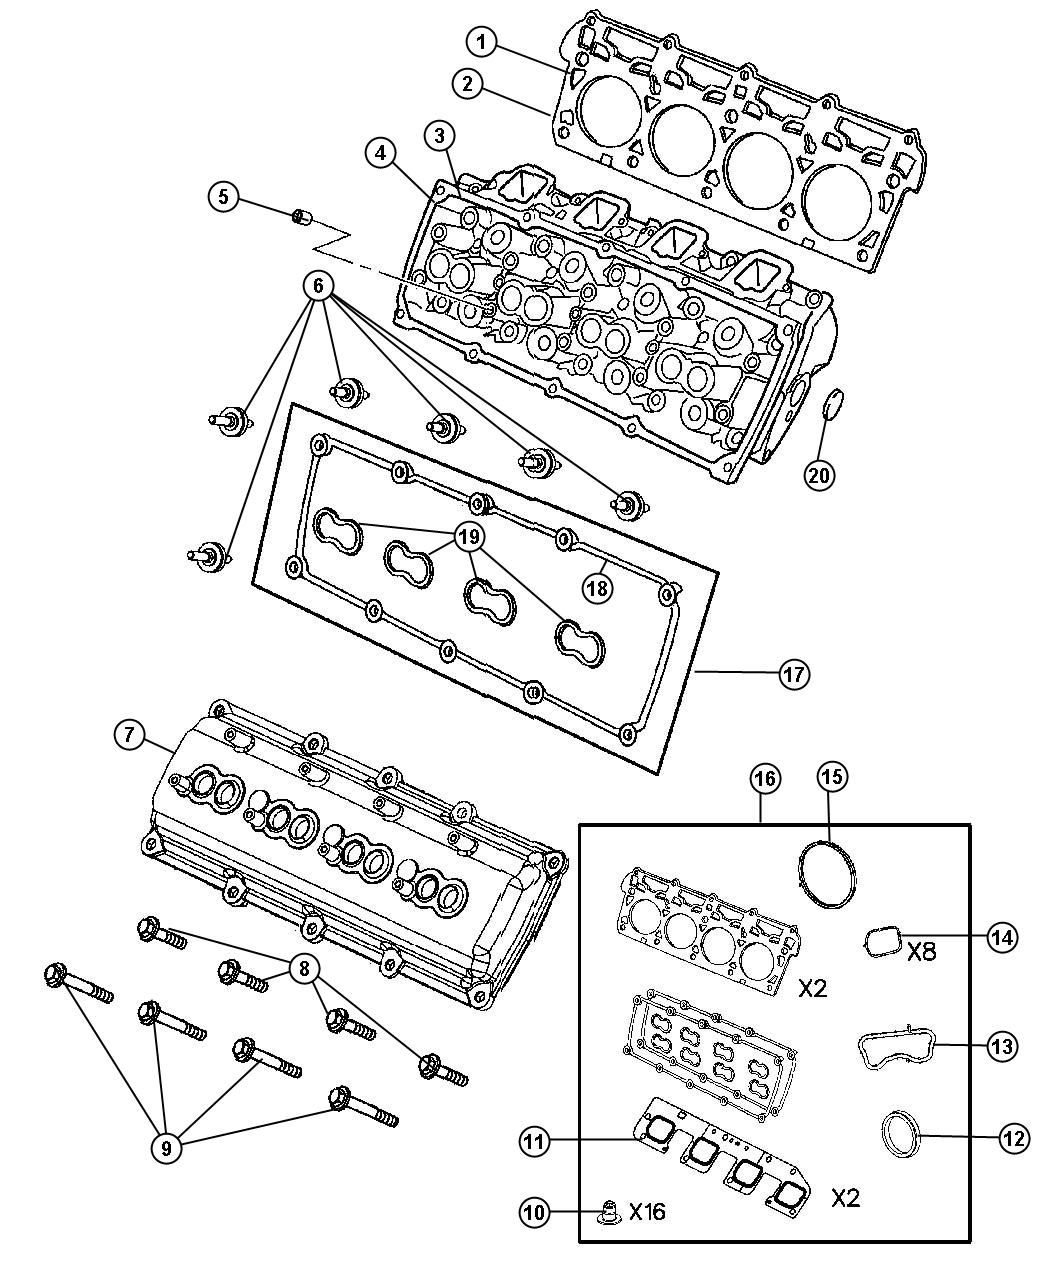 i2154319  L Hemi Engine Gasket Diagram on jeep grand cherokee, jeep cherokee, performance parts, engine pulley part number, engine pulley schematic, v8 horsepower, intake manifold upgrade,